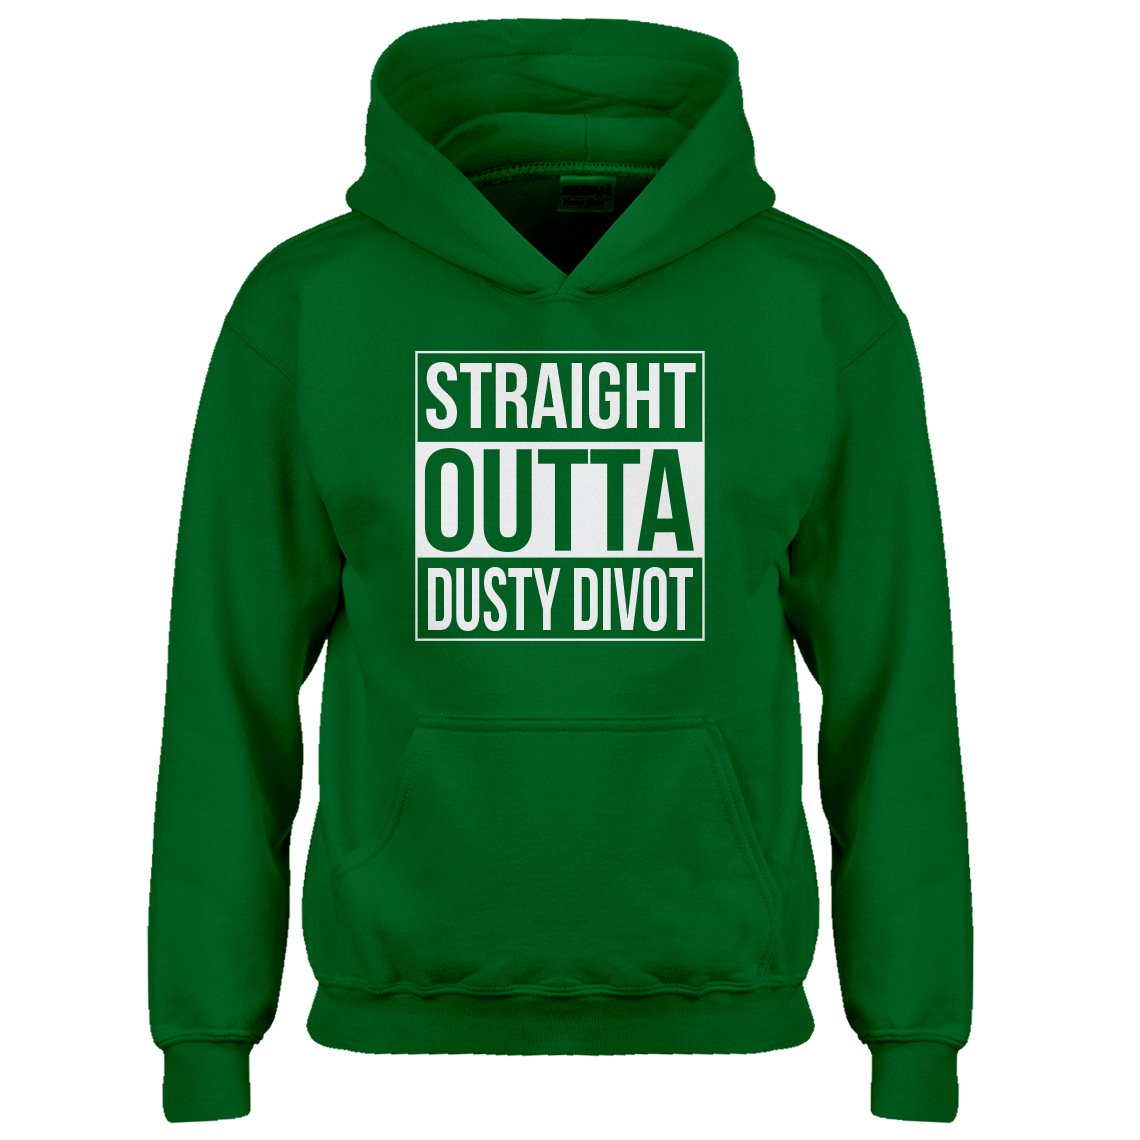 Indica Plateau Straight Outta Dusty Divot Kids Hoodie 3607-Z